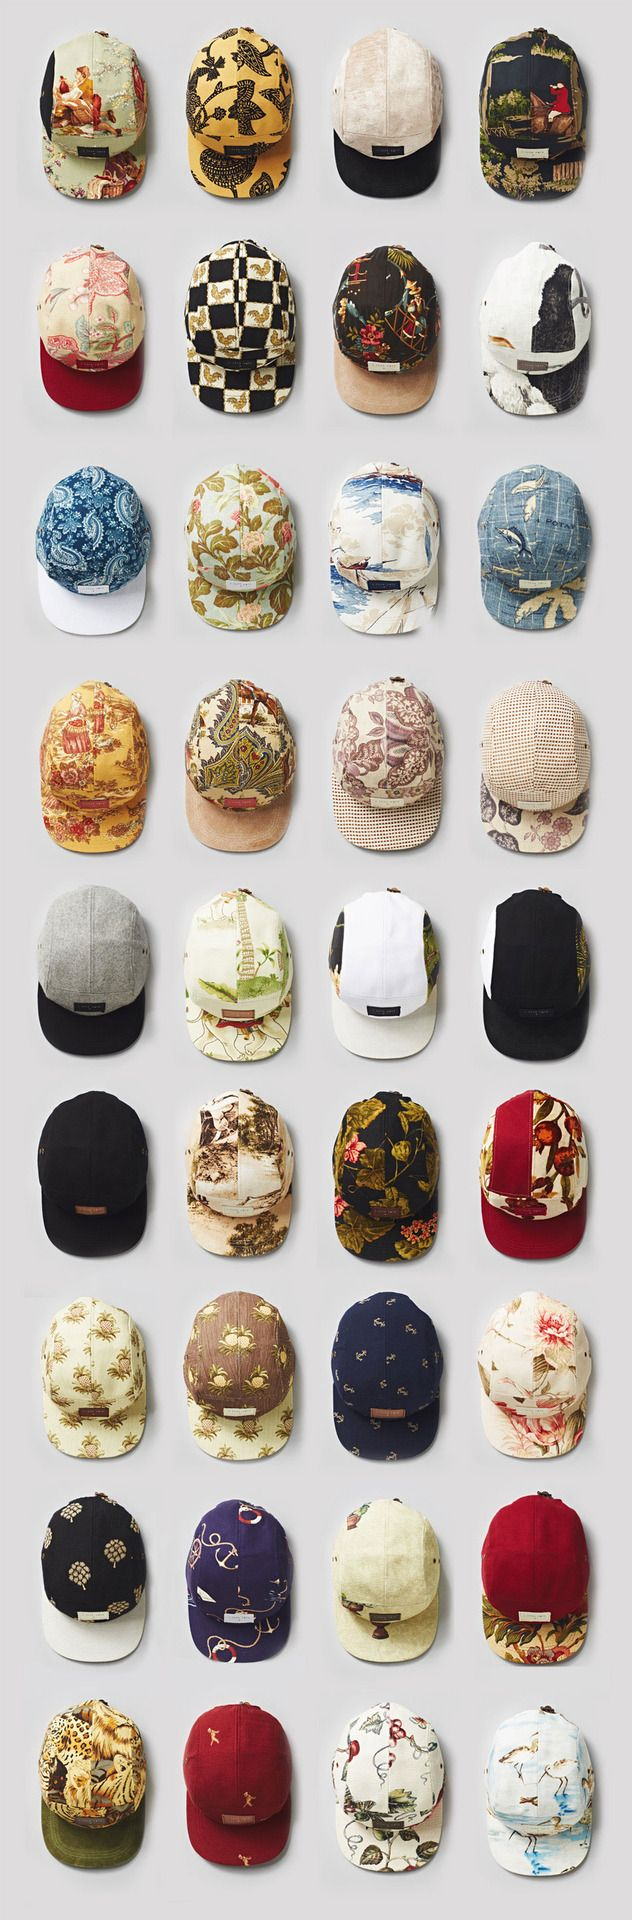 I Love Ugly 5 Panel Caps Holiday 12 (I have the one that is the first in the line that is second from the bottom). AS Yes.